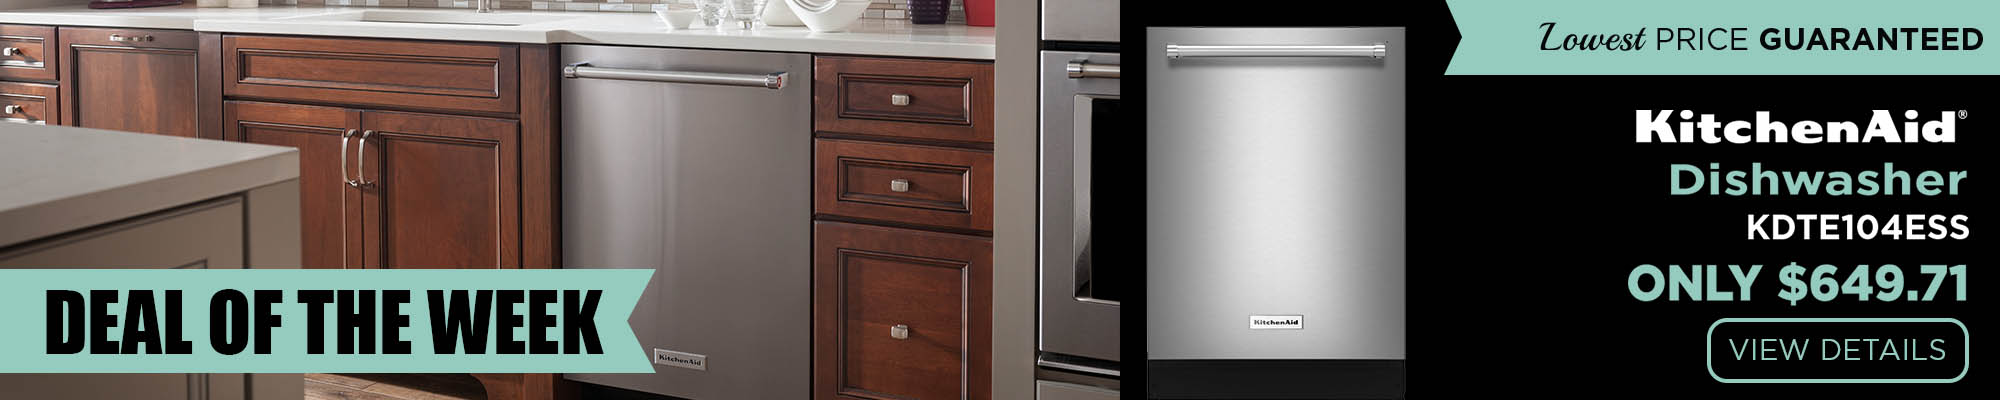 Deal of the week - Amana Refrigerator